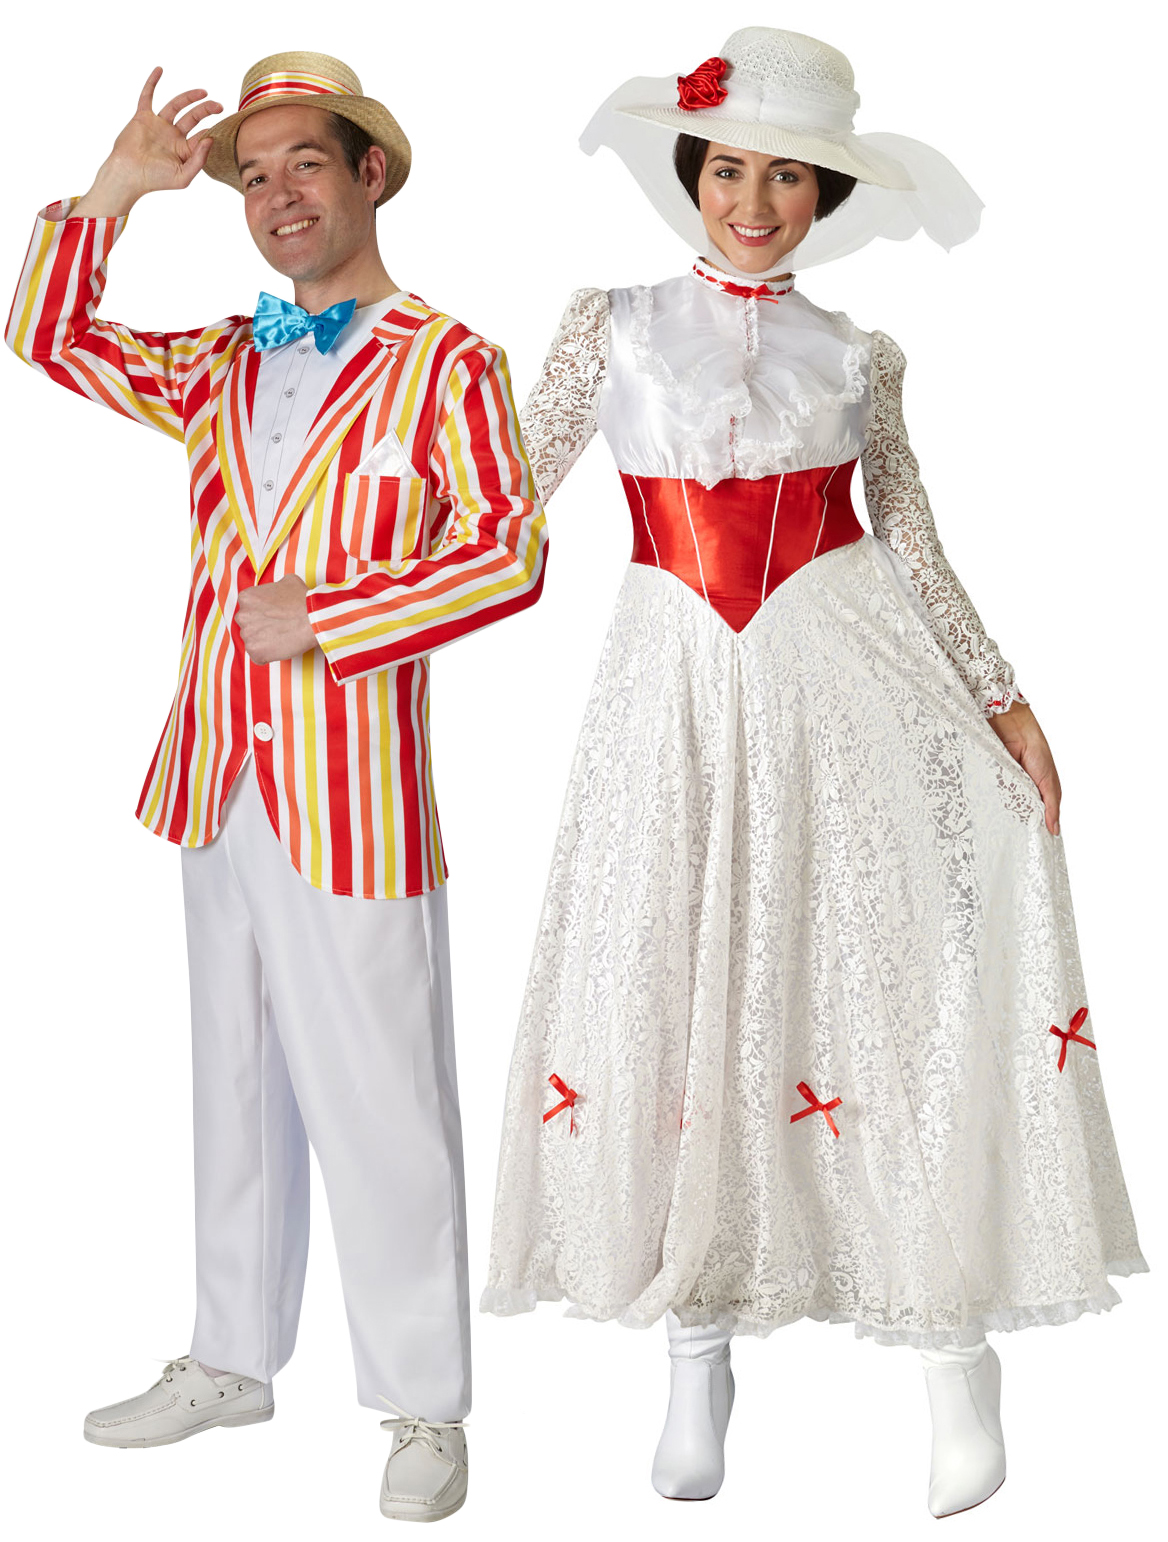 mary poppins or bert jolly holiday fancy dress disney movie adults costumes new ebay. Black Bedroom Furniture Sets. Home Design Ideas